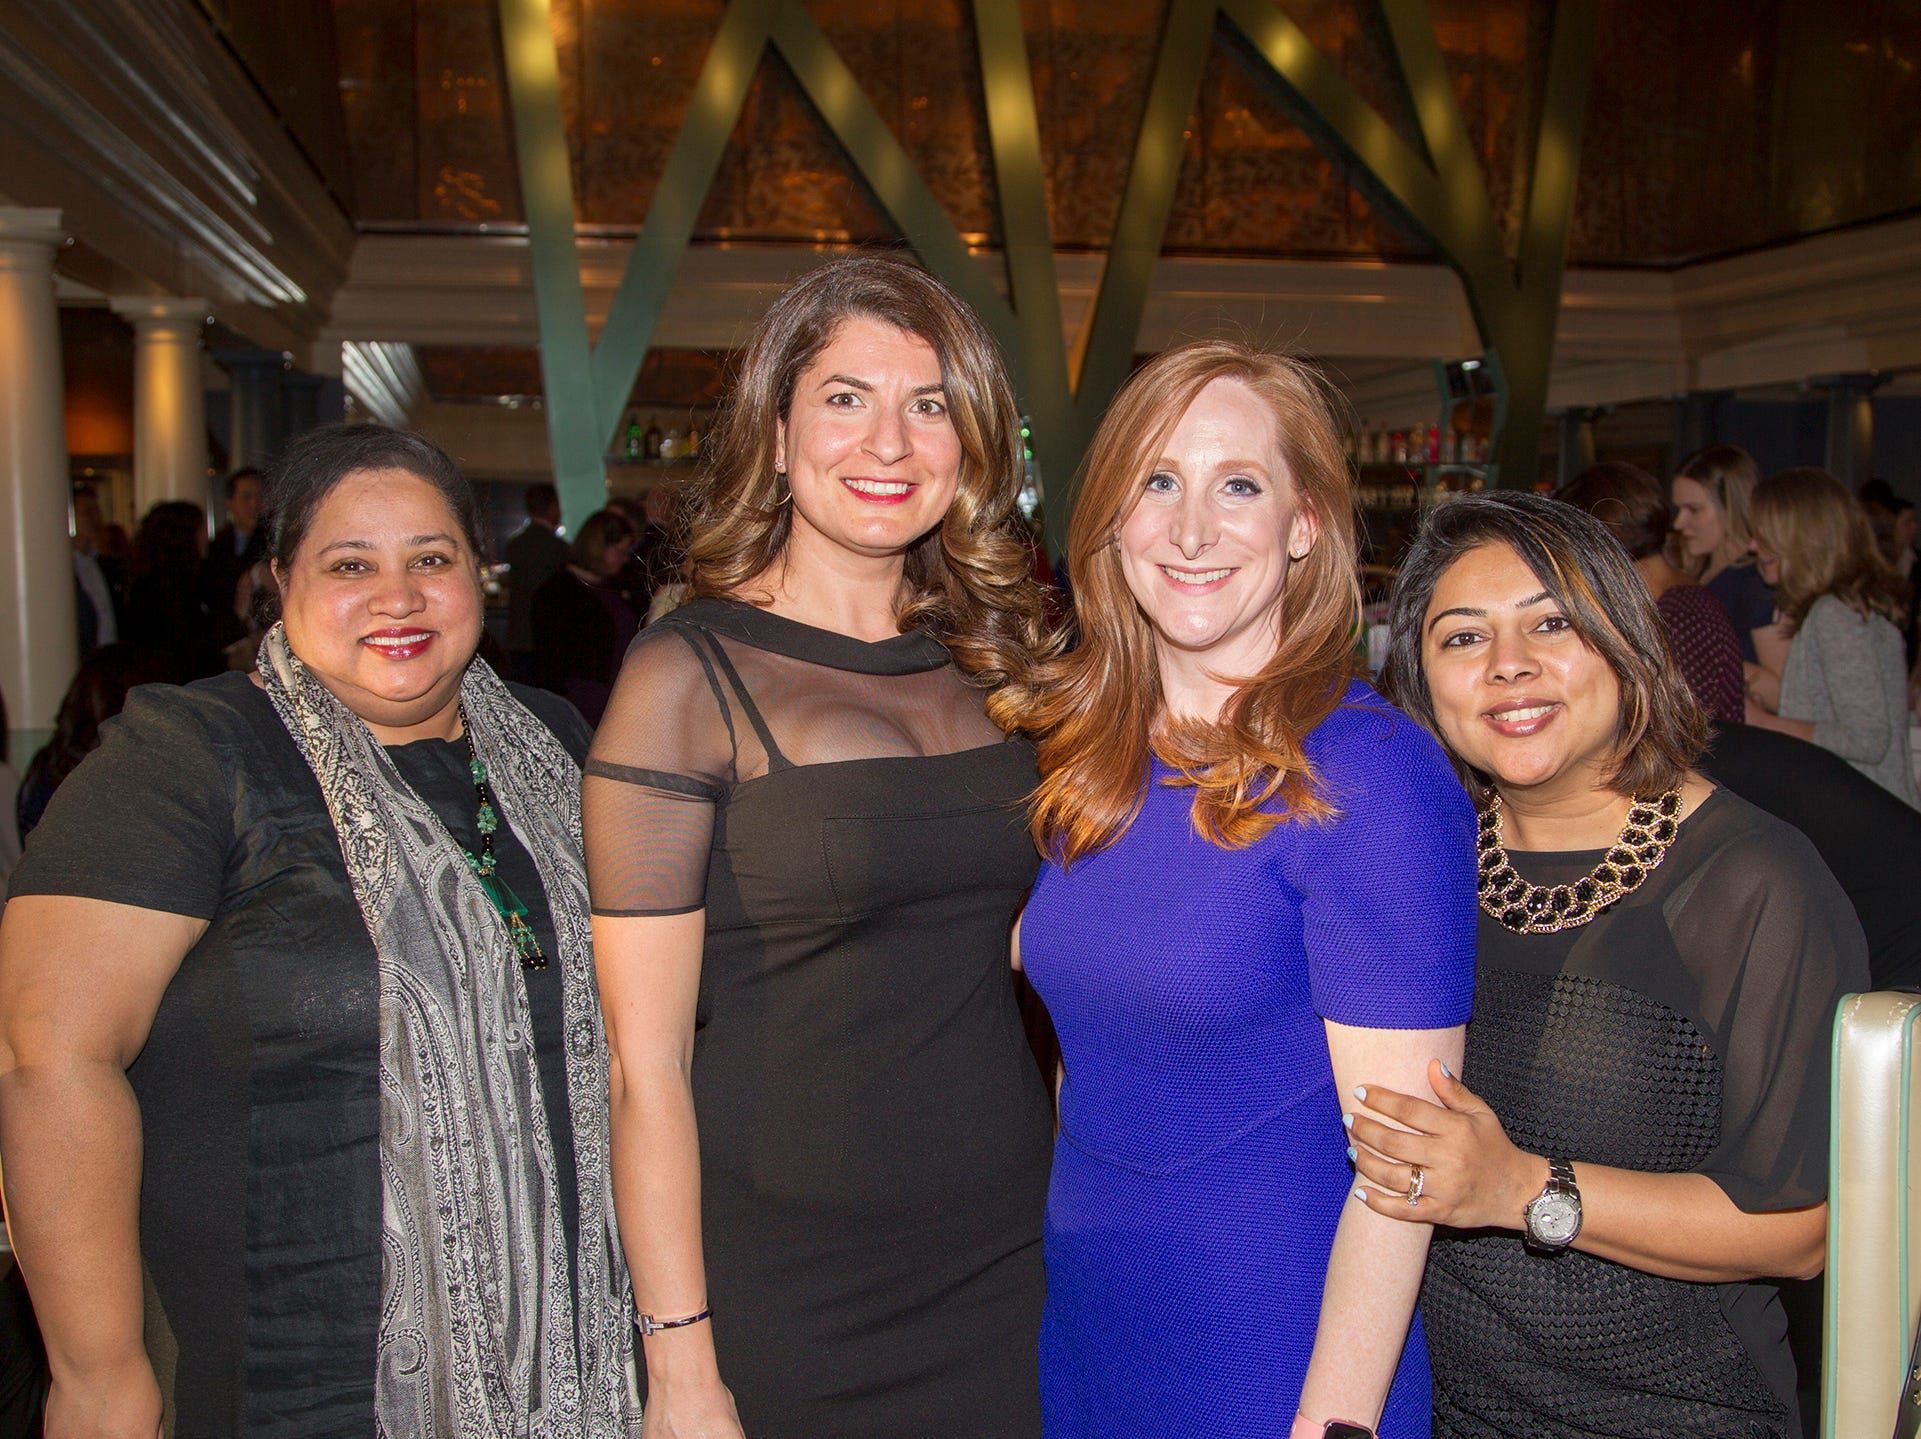 Rose Basum, Ingrit Balikcioglu, Shanna Jafri, Vaishali Shah. Girl Scouts of Northern New Jersey held its Women of Achievement 2019 at Westmount Country Club in Woodland Park. 04/04/2019